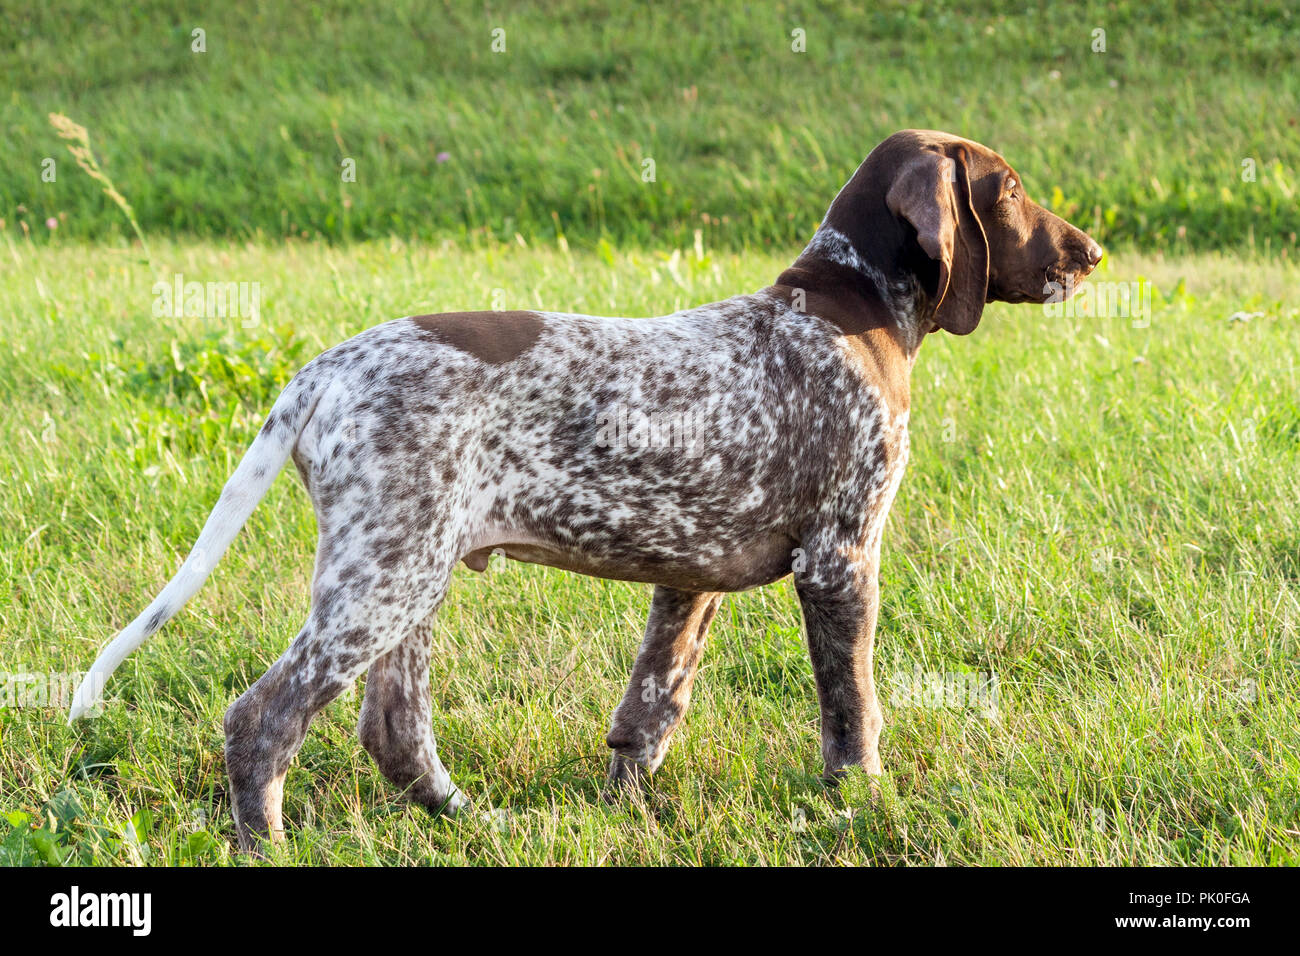 german shorthaired pointer, german kurtshaar one spotted puppy stand up with head up, profile photo, against the background of green grass, sunny - Stock Image